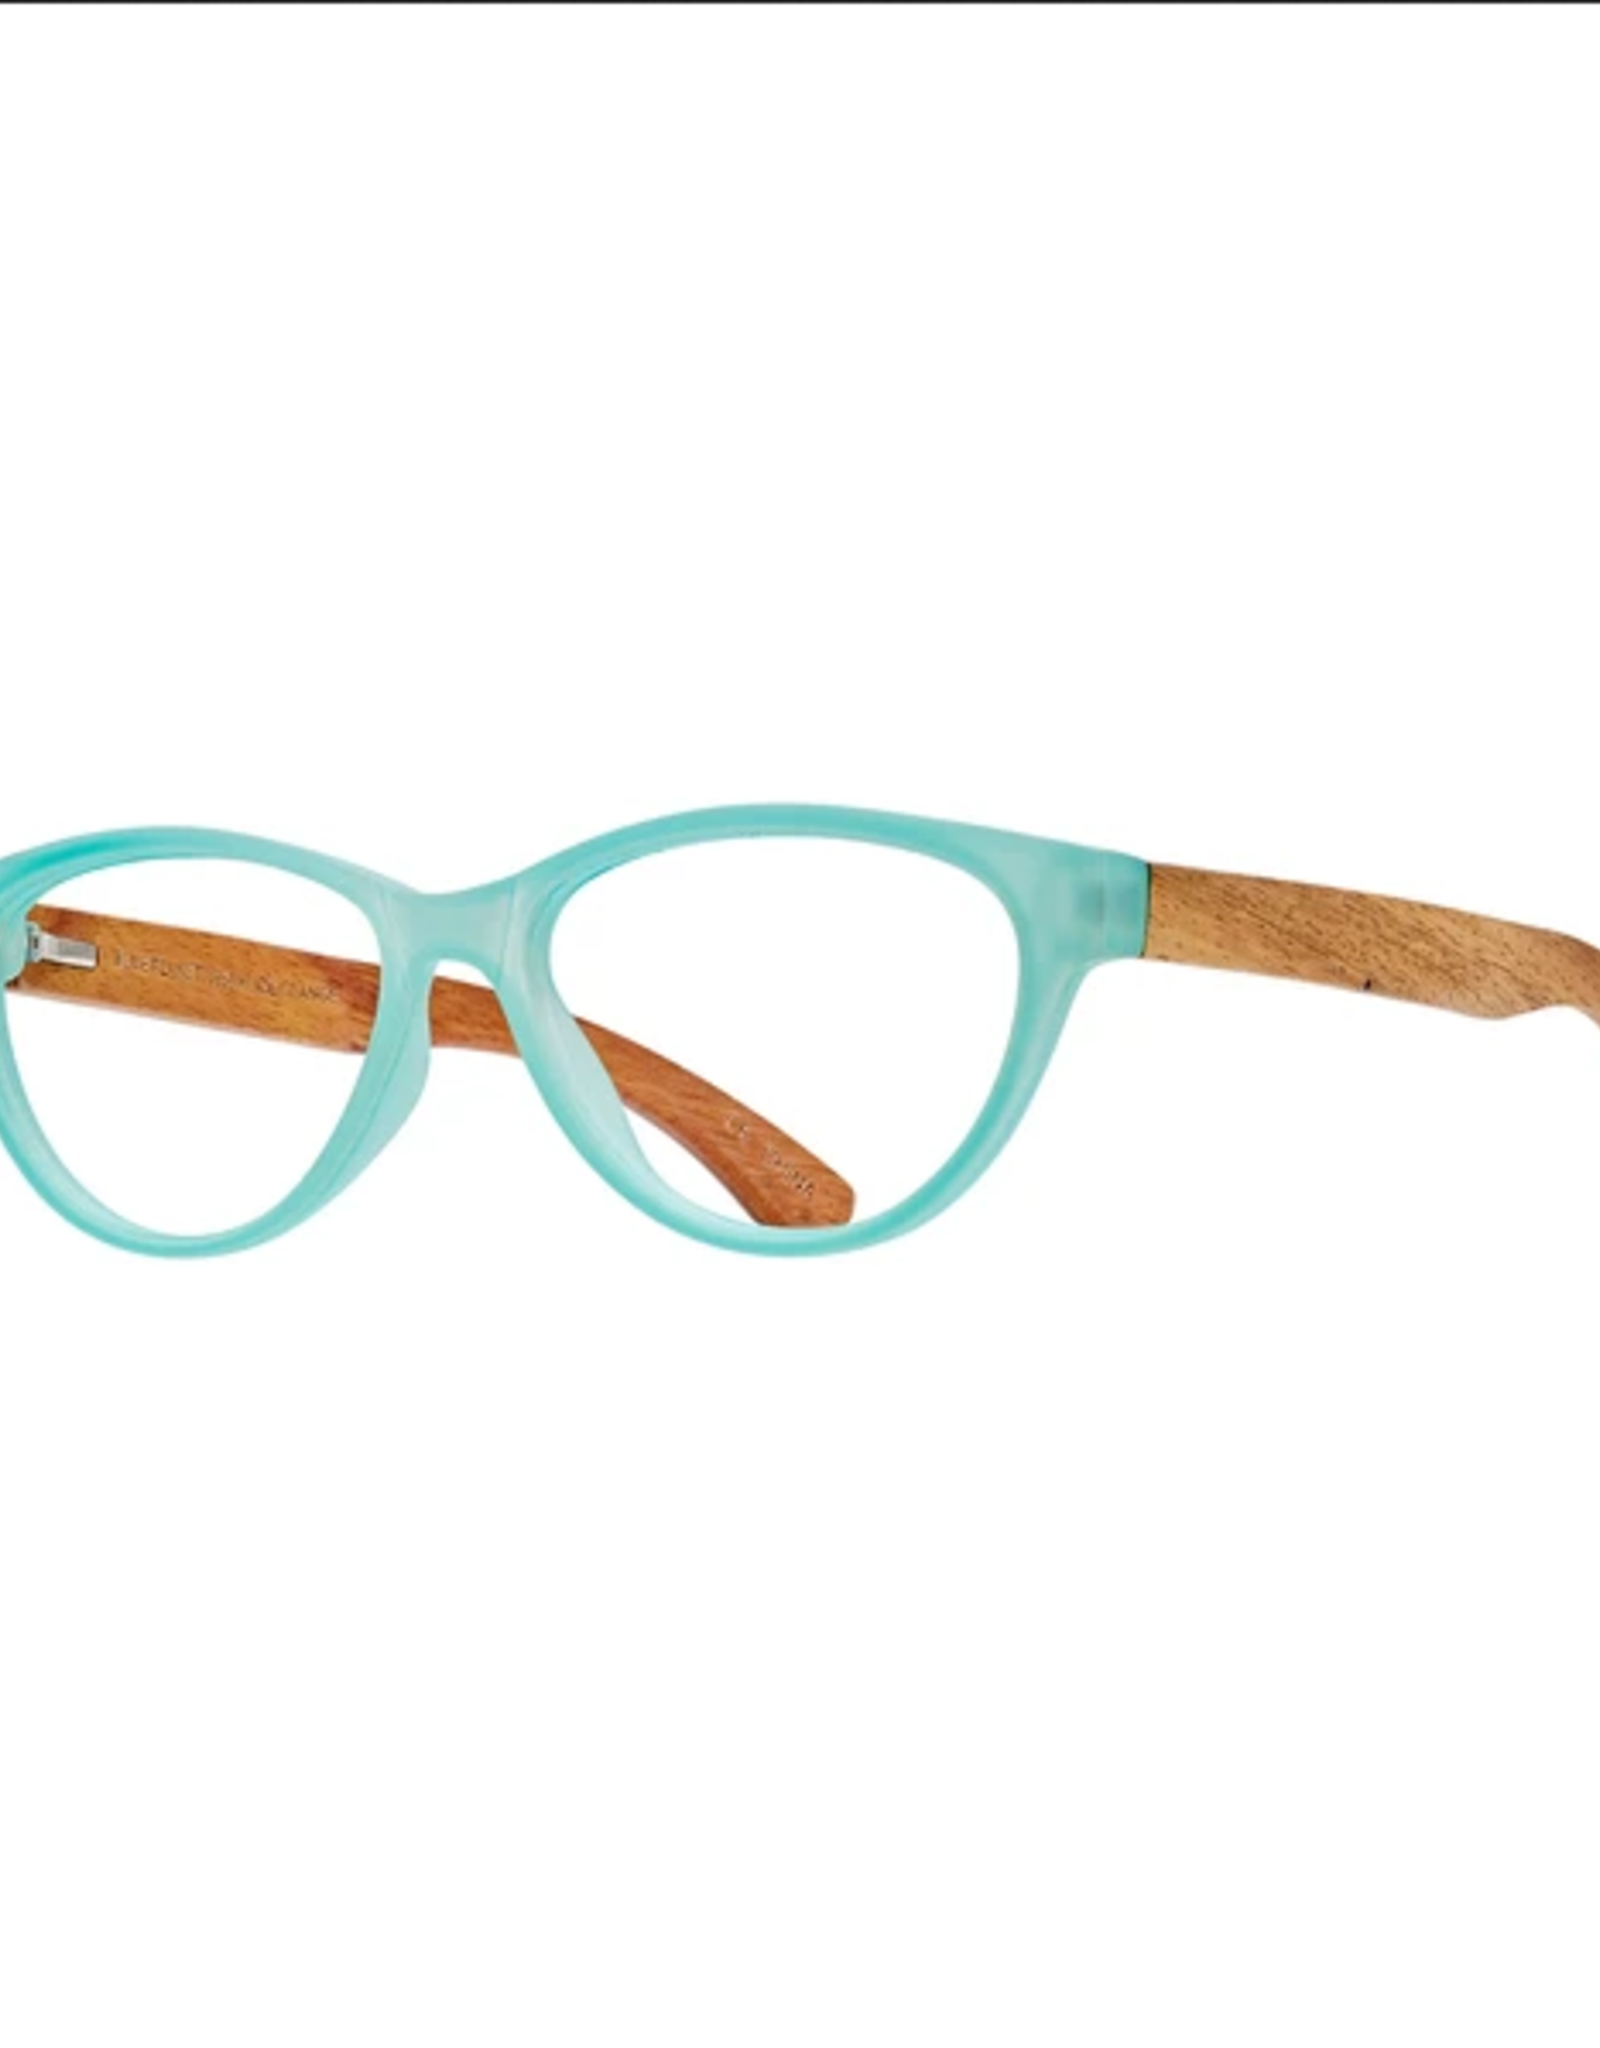 BLUE PLANET EYEWEAR READERS OJAI TURQUOISE